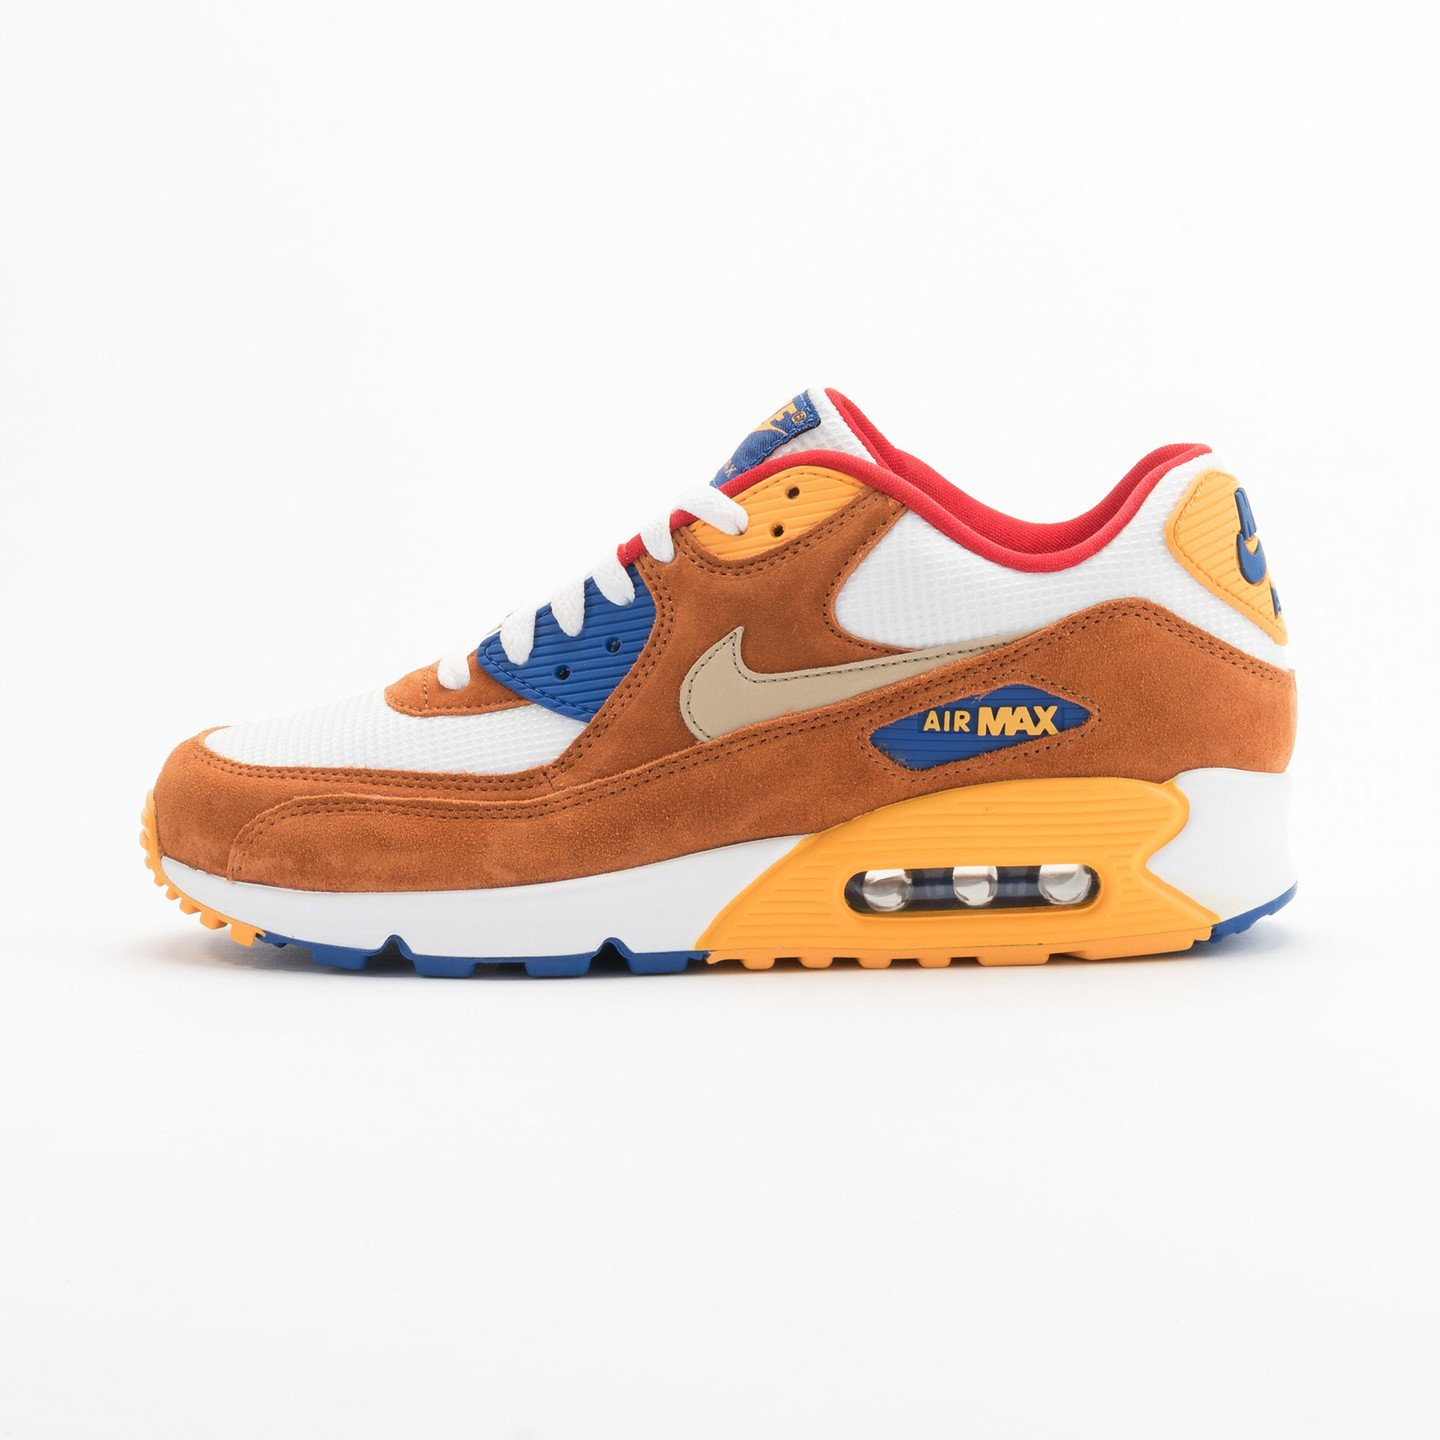 Nike Air Max 90 Premium White / Brown / Yellow / Gold 700155-107-45